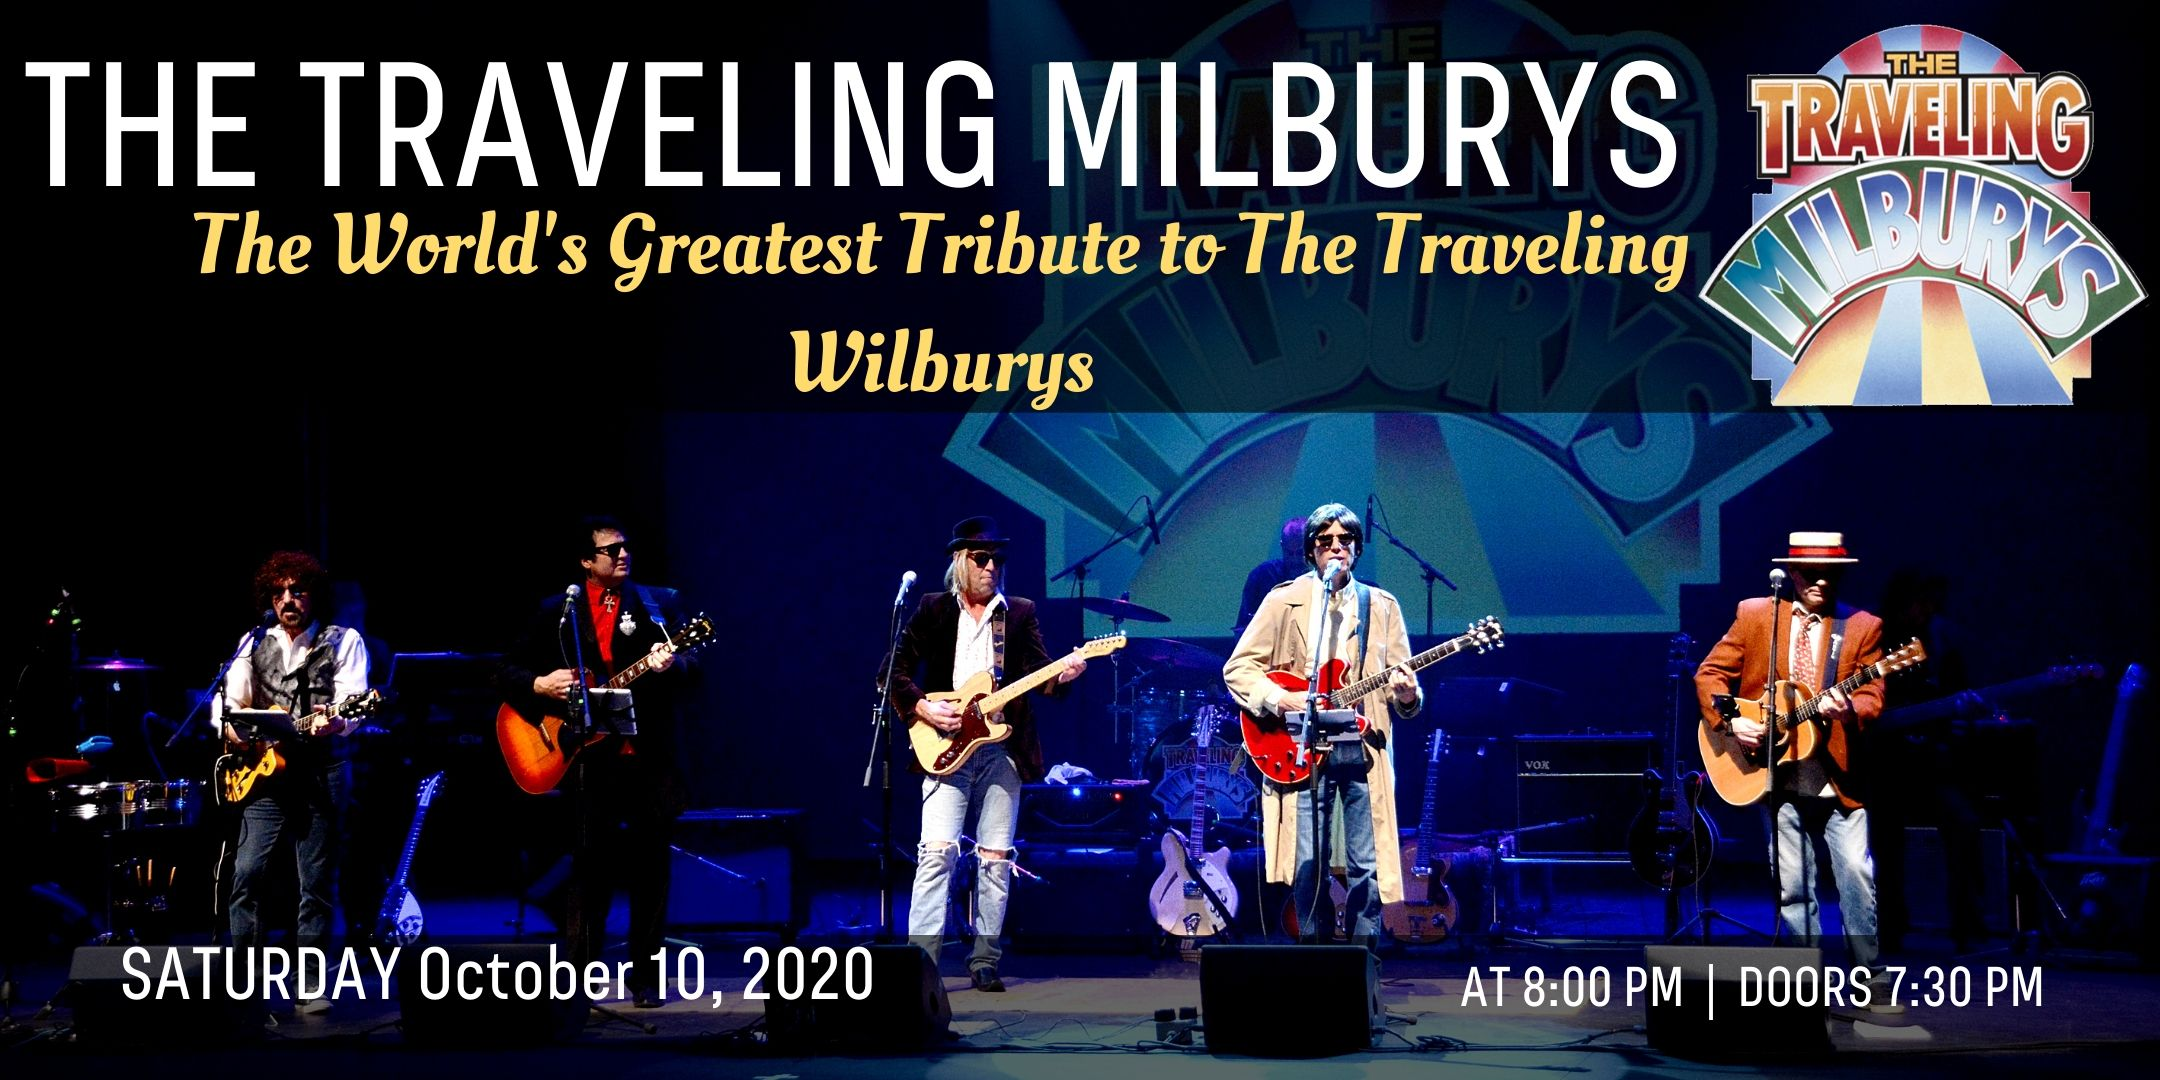 The Traveling Milburys: World's Greatest Tribute to The Traveling Wilburys